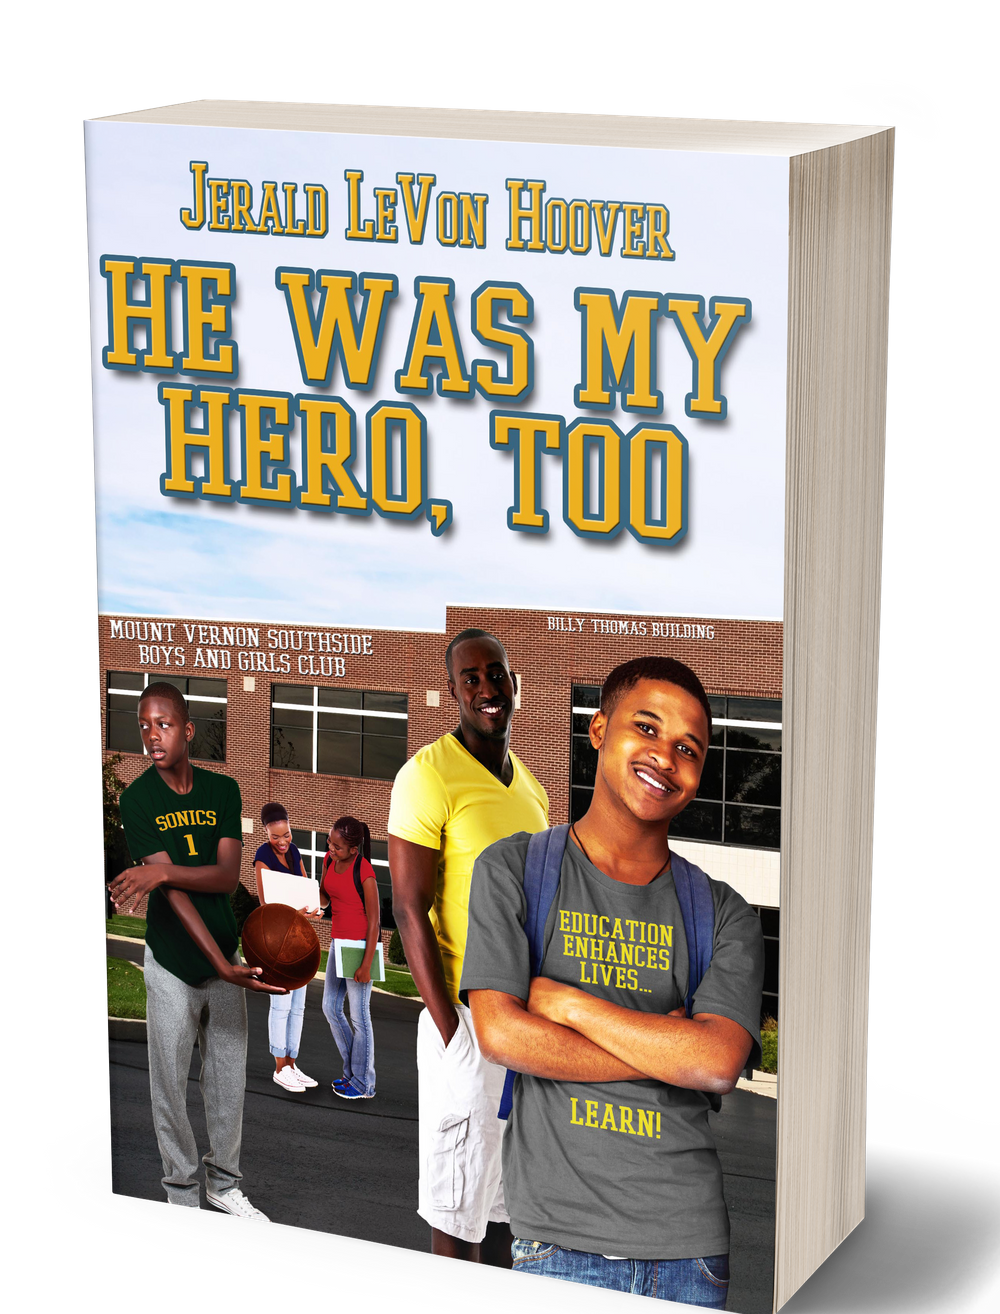 the hero book series, hero, book, series, jerald hoover, class,  friend,  jerald, hoover, literacy, literate, learning. learn, social learning, emotional learning, social emotional learning, basketball, sports, friendship, camaraderie, he was my hero too, hero